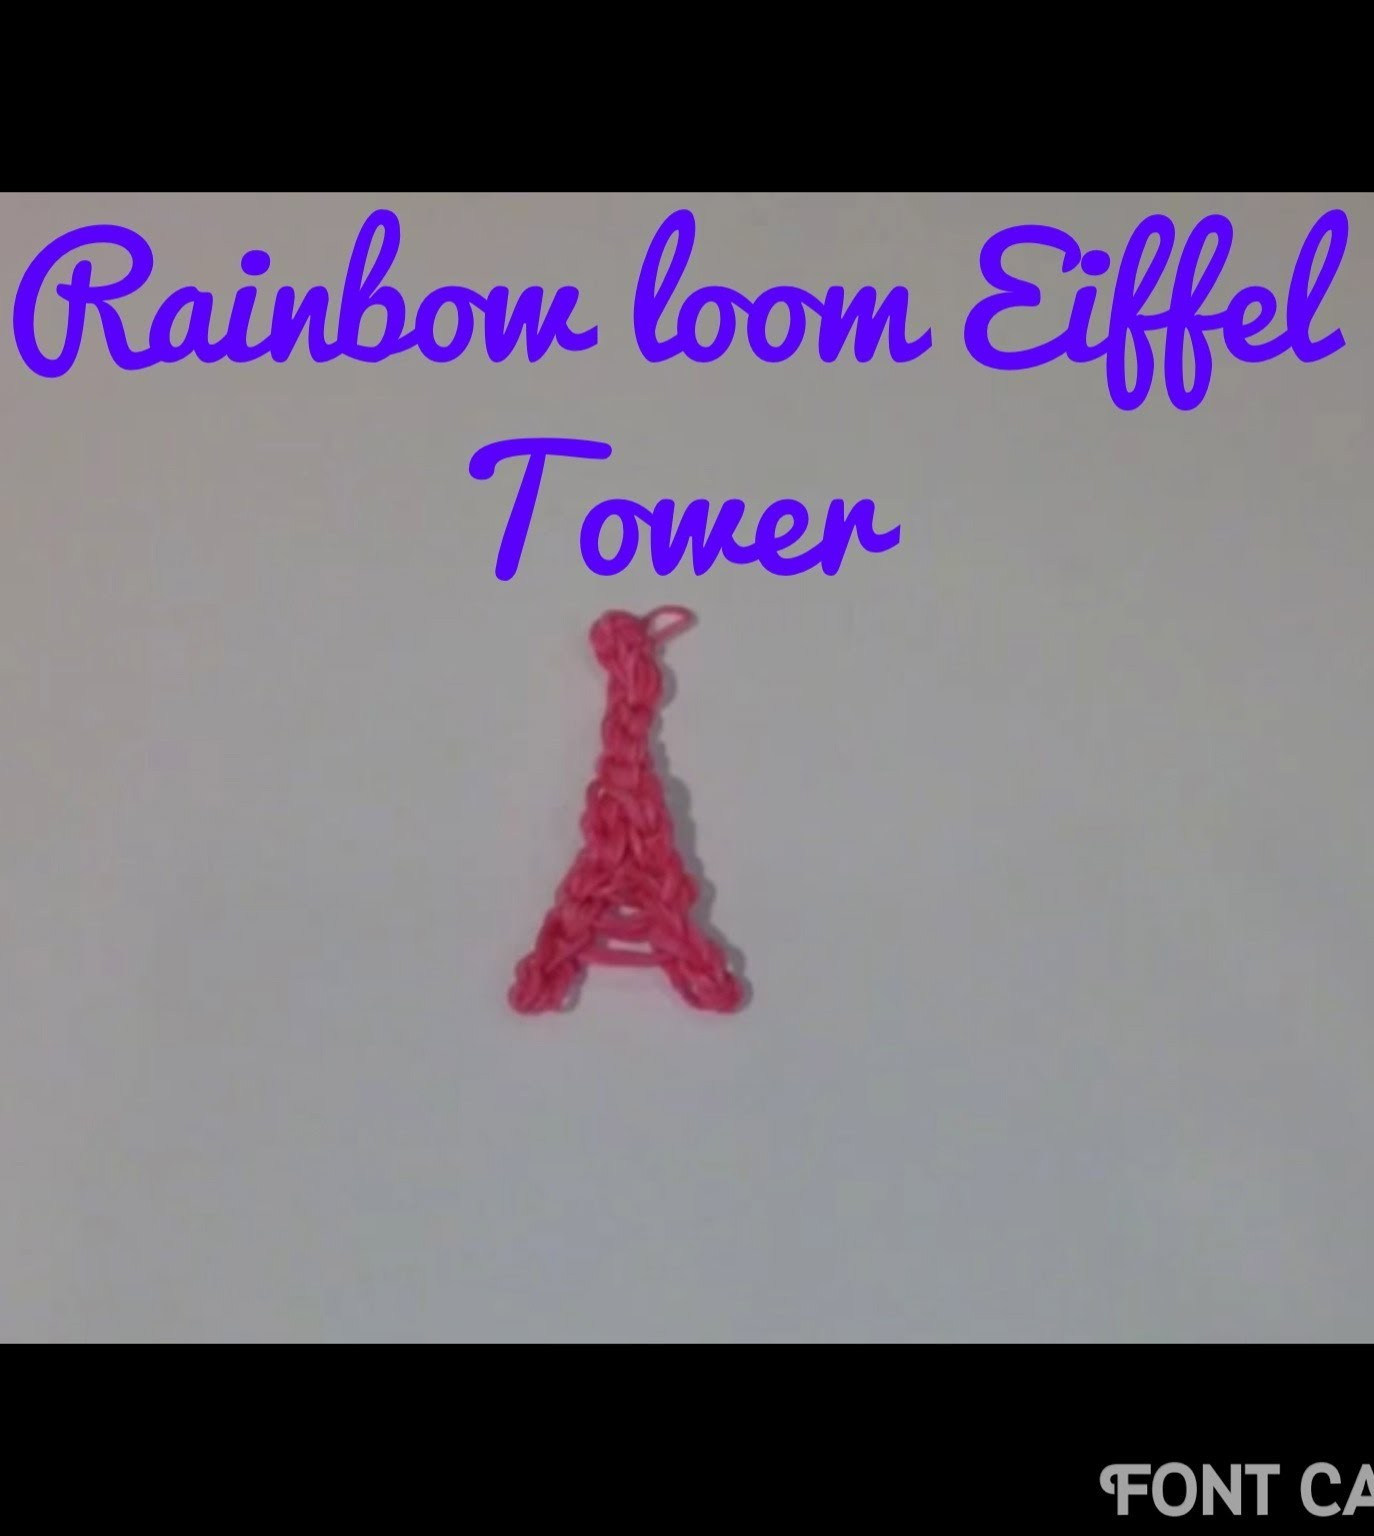 Eiffel Tower: Rainbow loom: How to make.tutorial